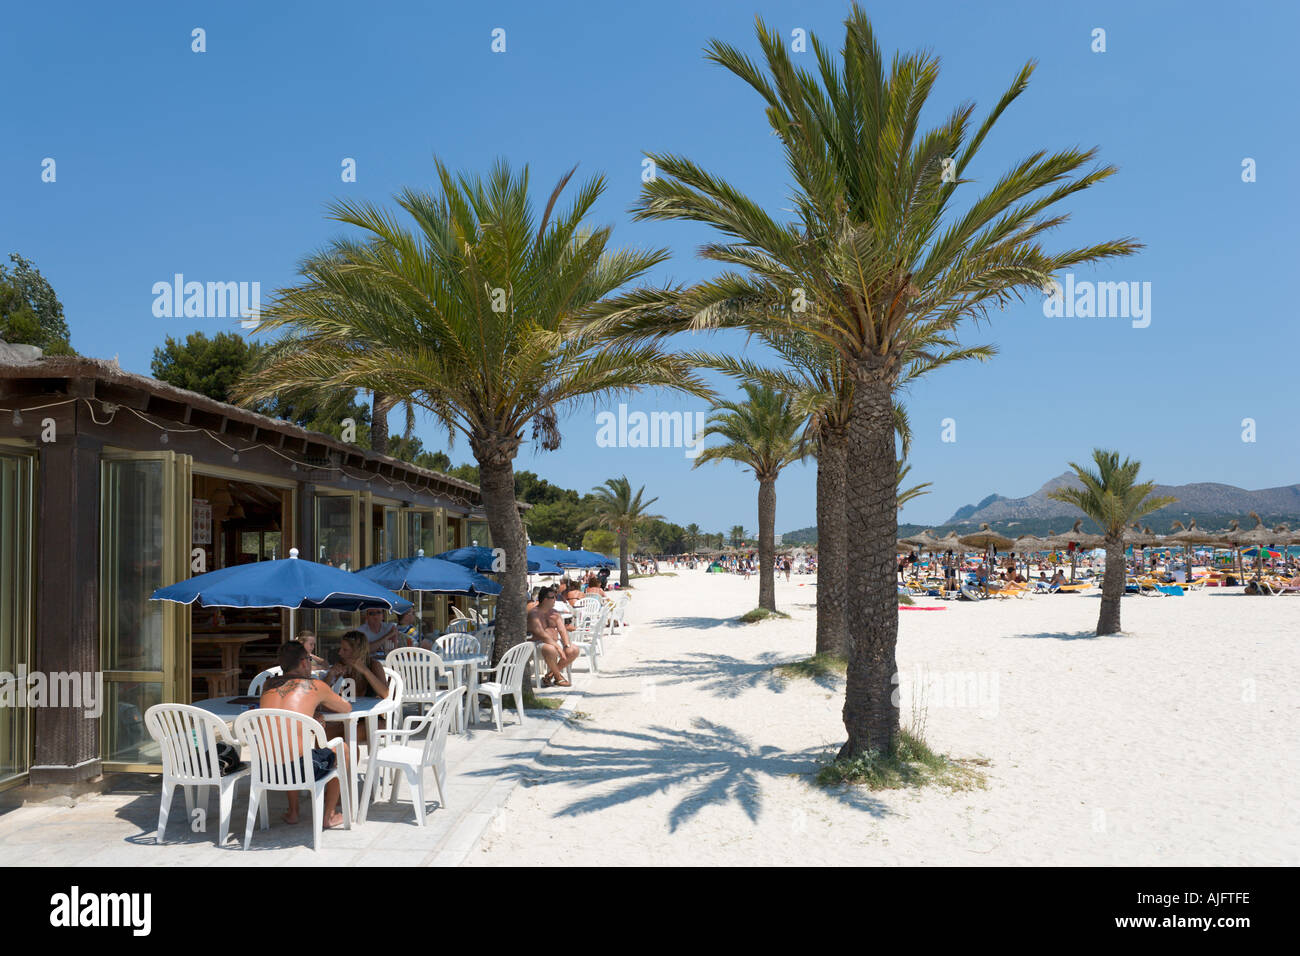 Beach Bar, Puerto de Alcudia, Mallorca, Spain - Stock Image